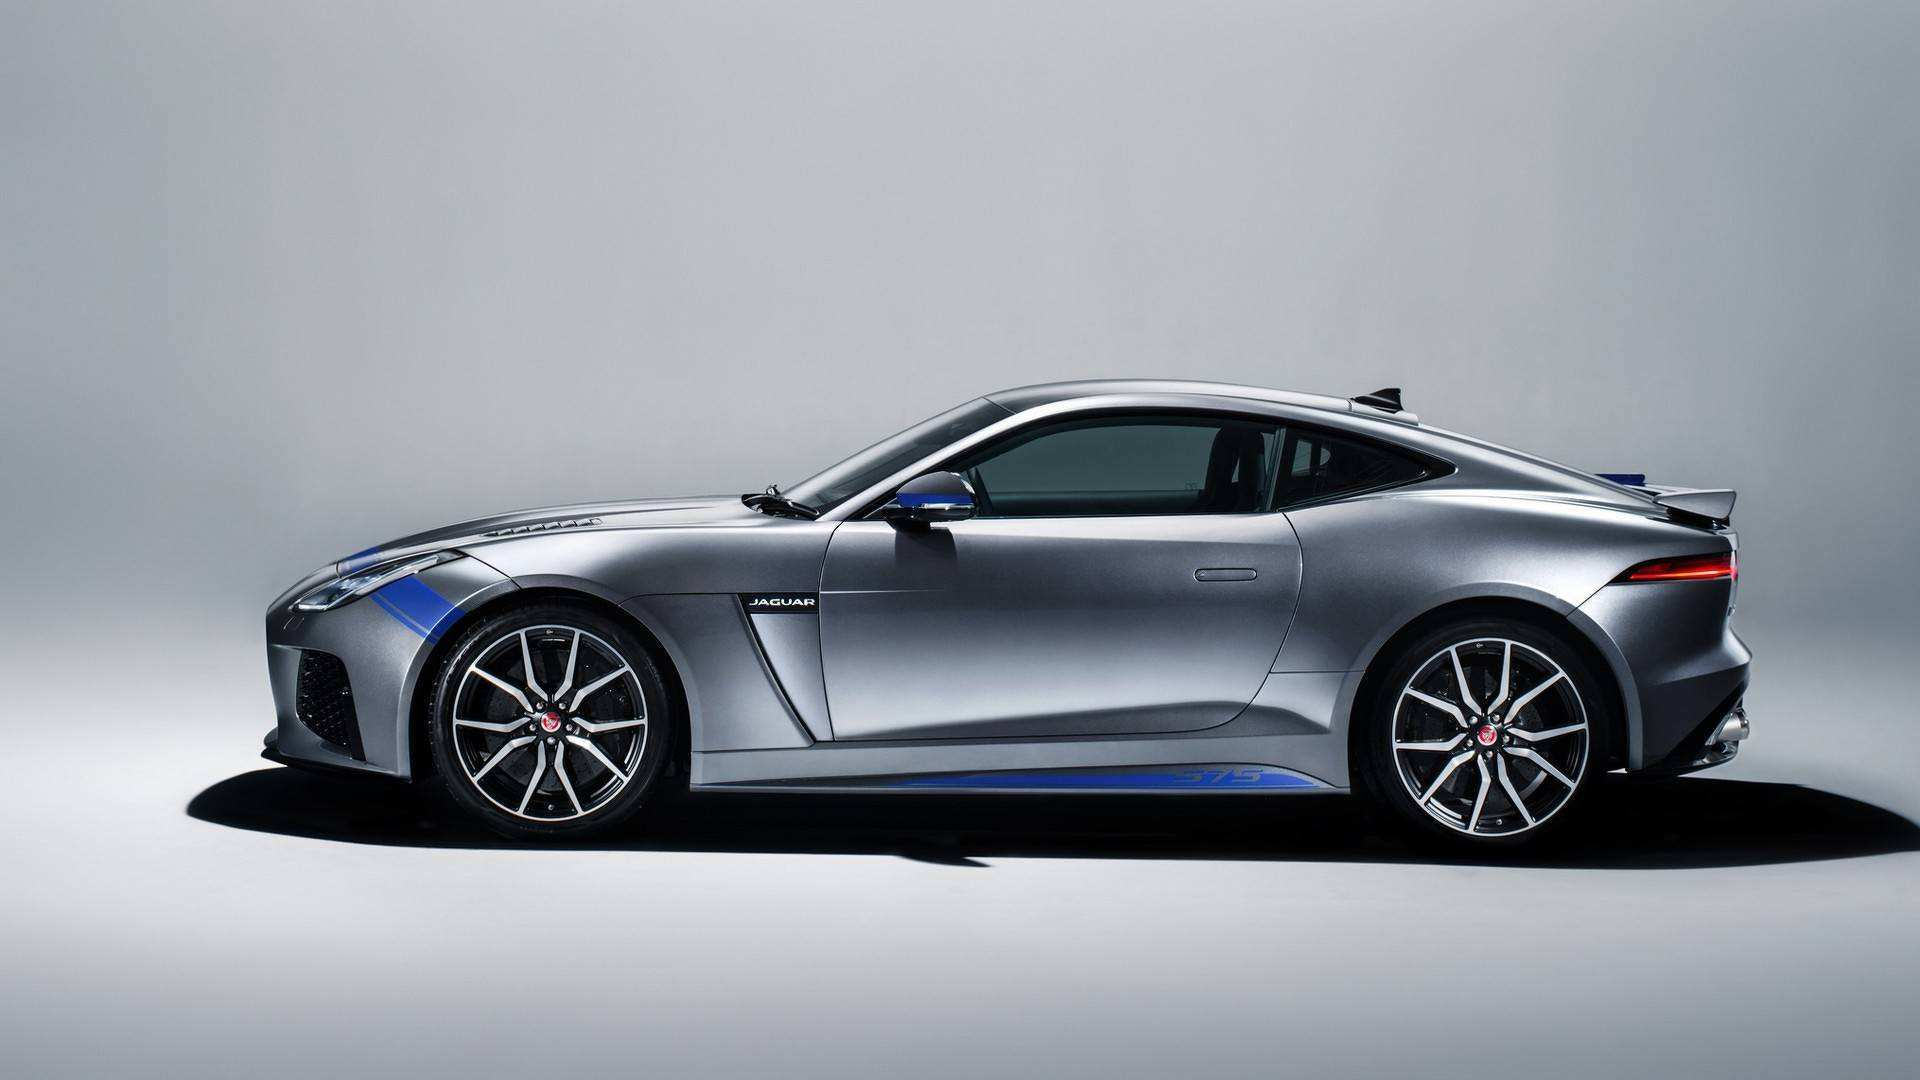 48 The 2020 Jaguar XK Price and Review for 2020 Jaguar XK